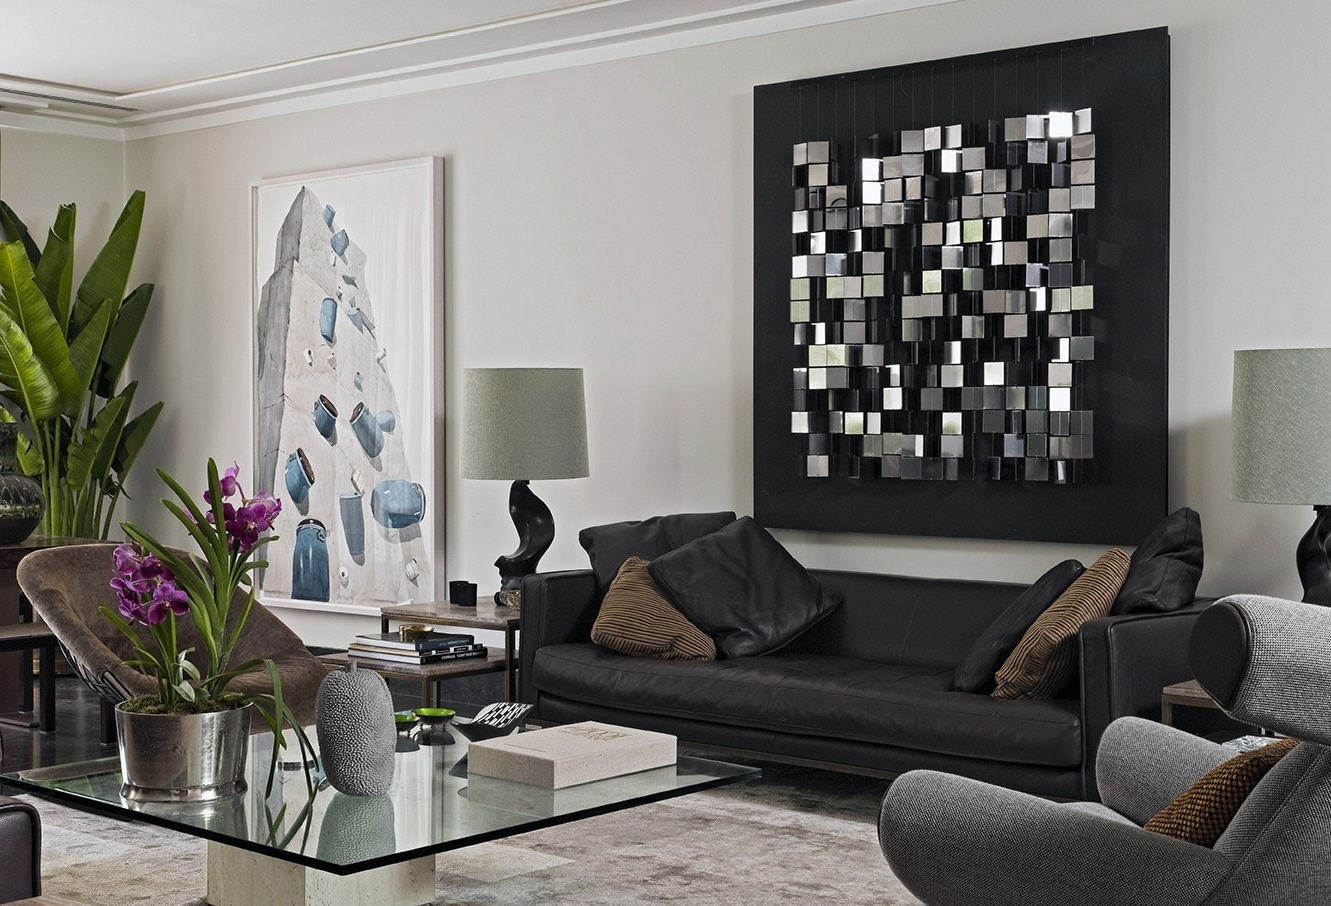 Living Room Decorating Ideas Black Leather Sofa Modern Living Room Decorating Black Leather Couch